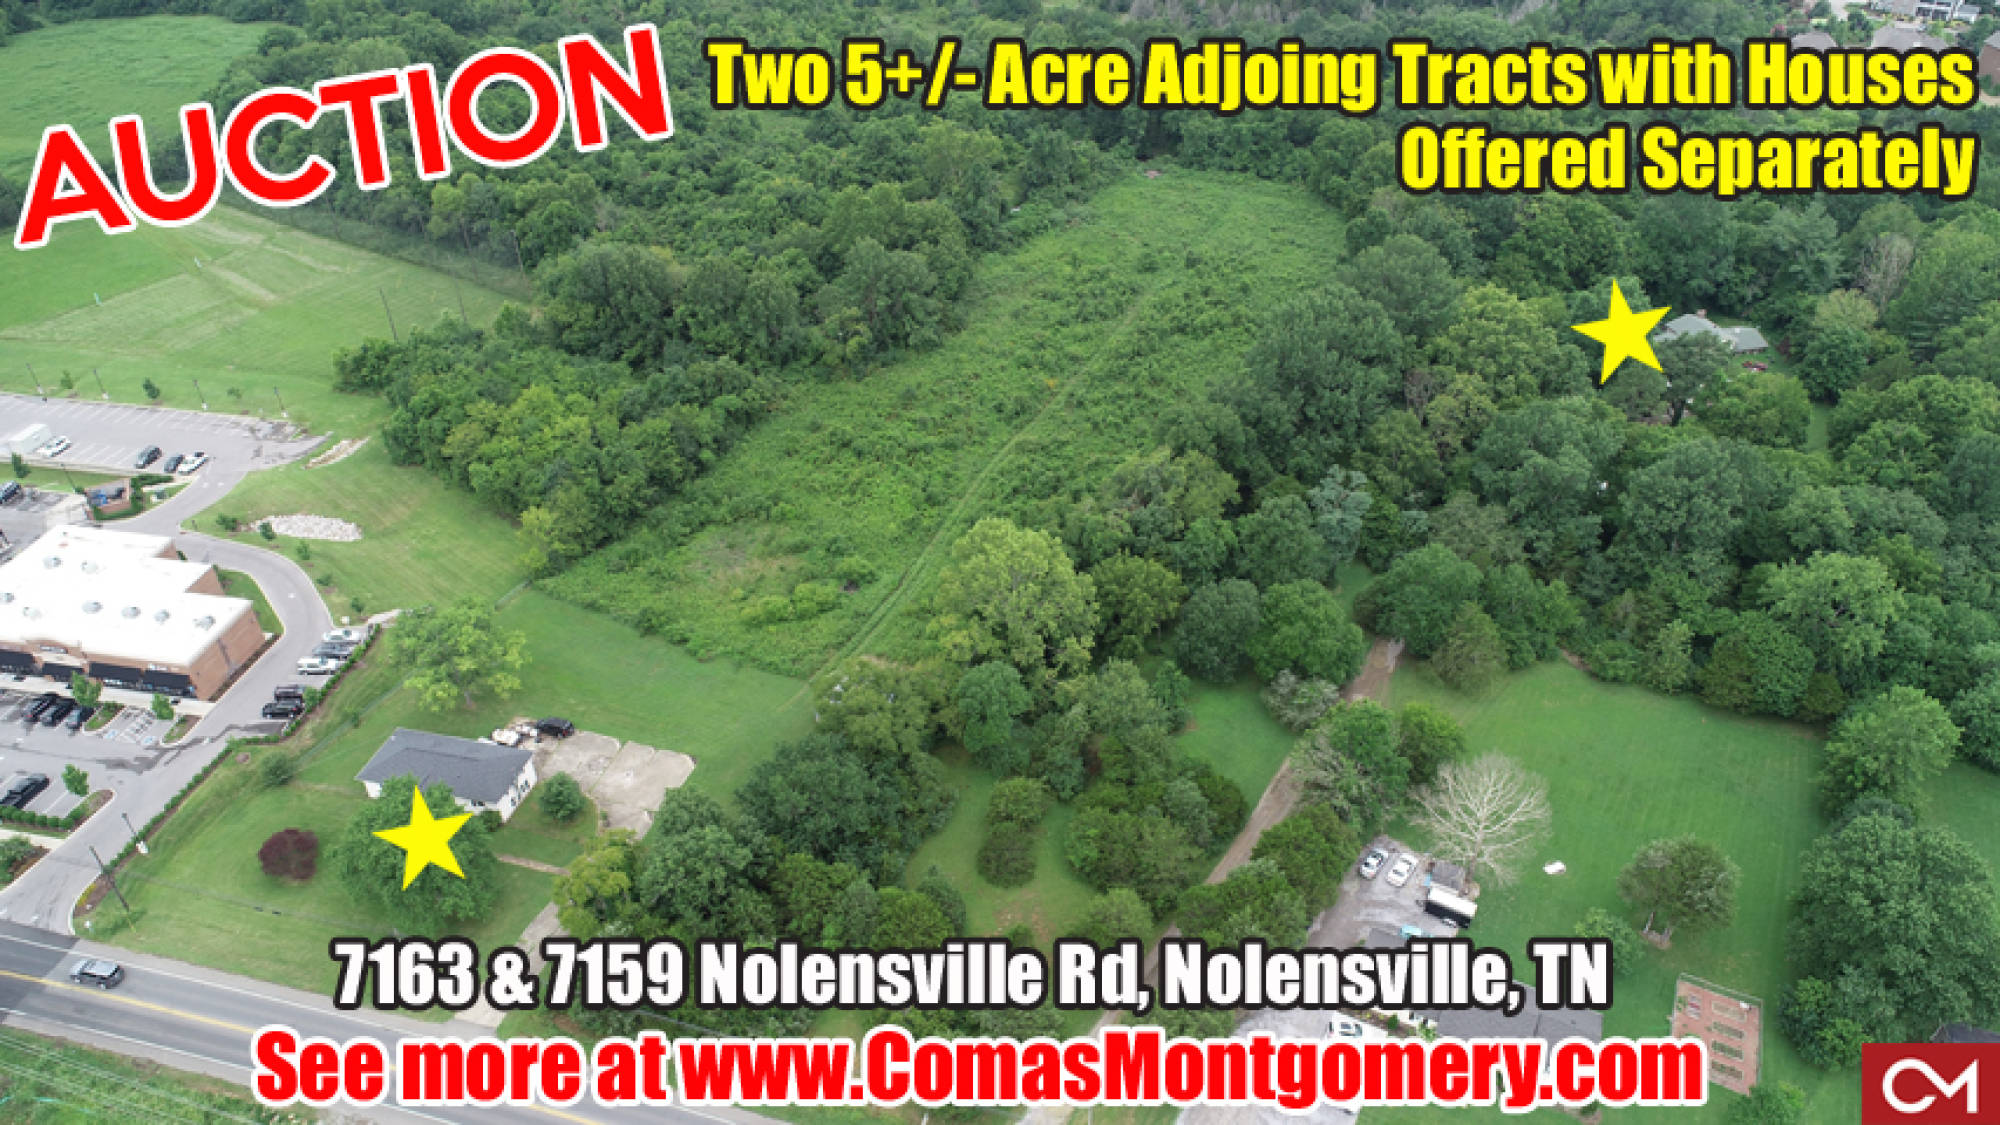 Nolensville, Real Estate, Land, Commercial, High Traffic, Residential, Home, For Sale, Houses, Comas, Montgomery, Tennessee